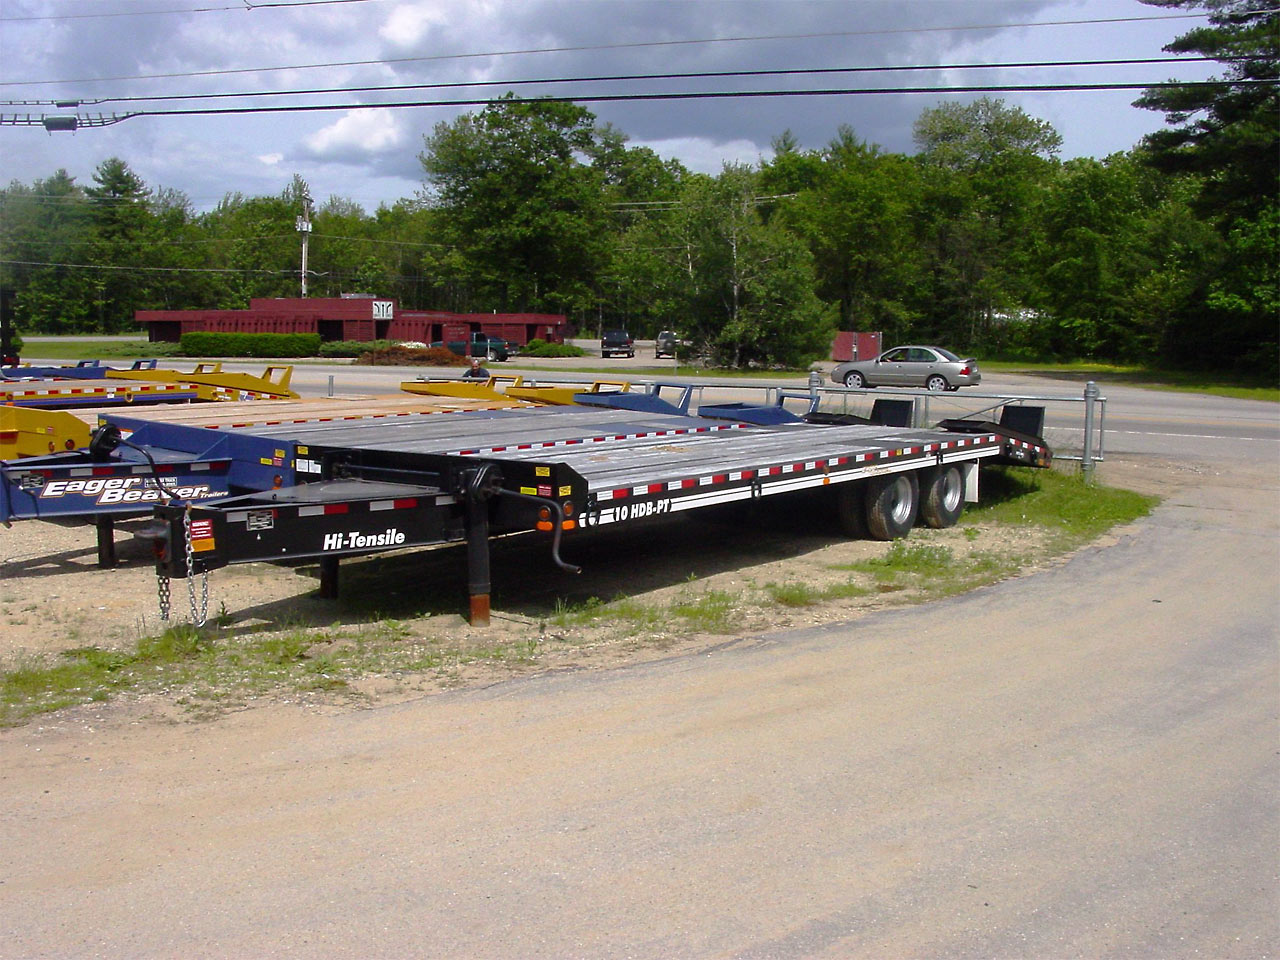 Trucks And Trailers For Sale At American Truck Buyer | Autos Weblog